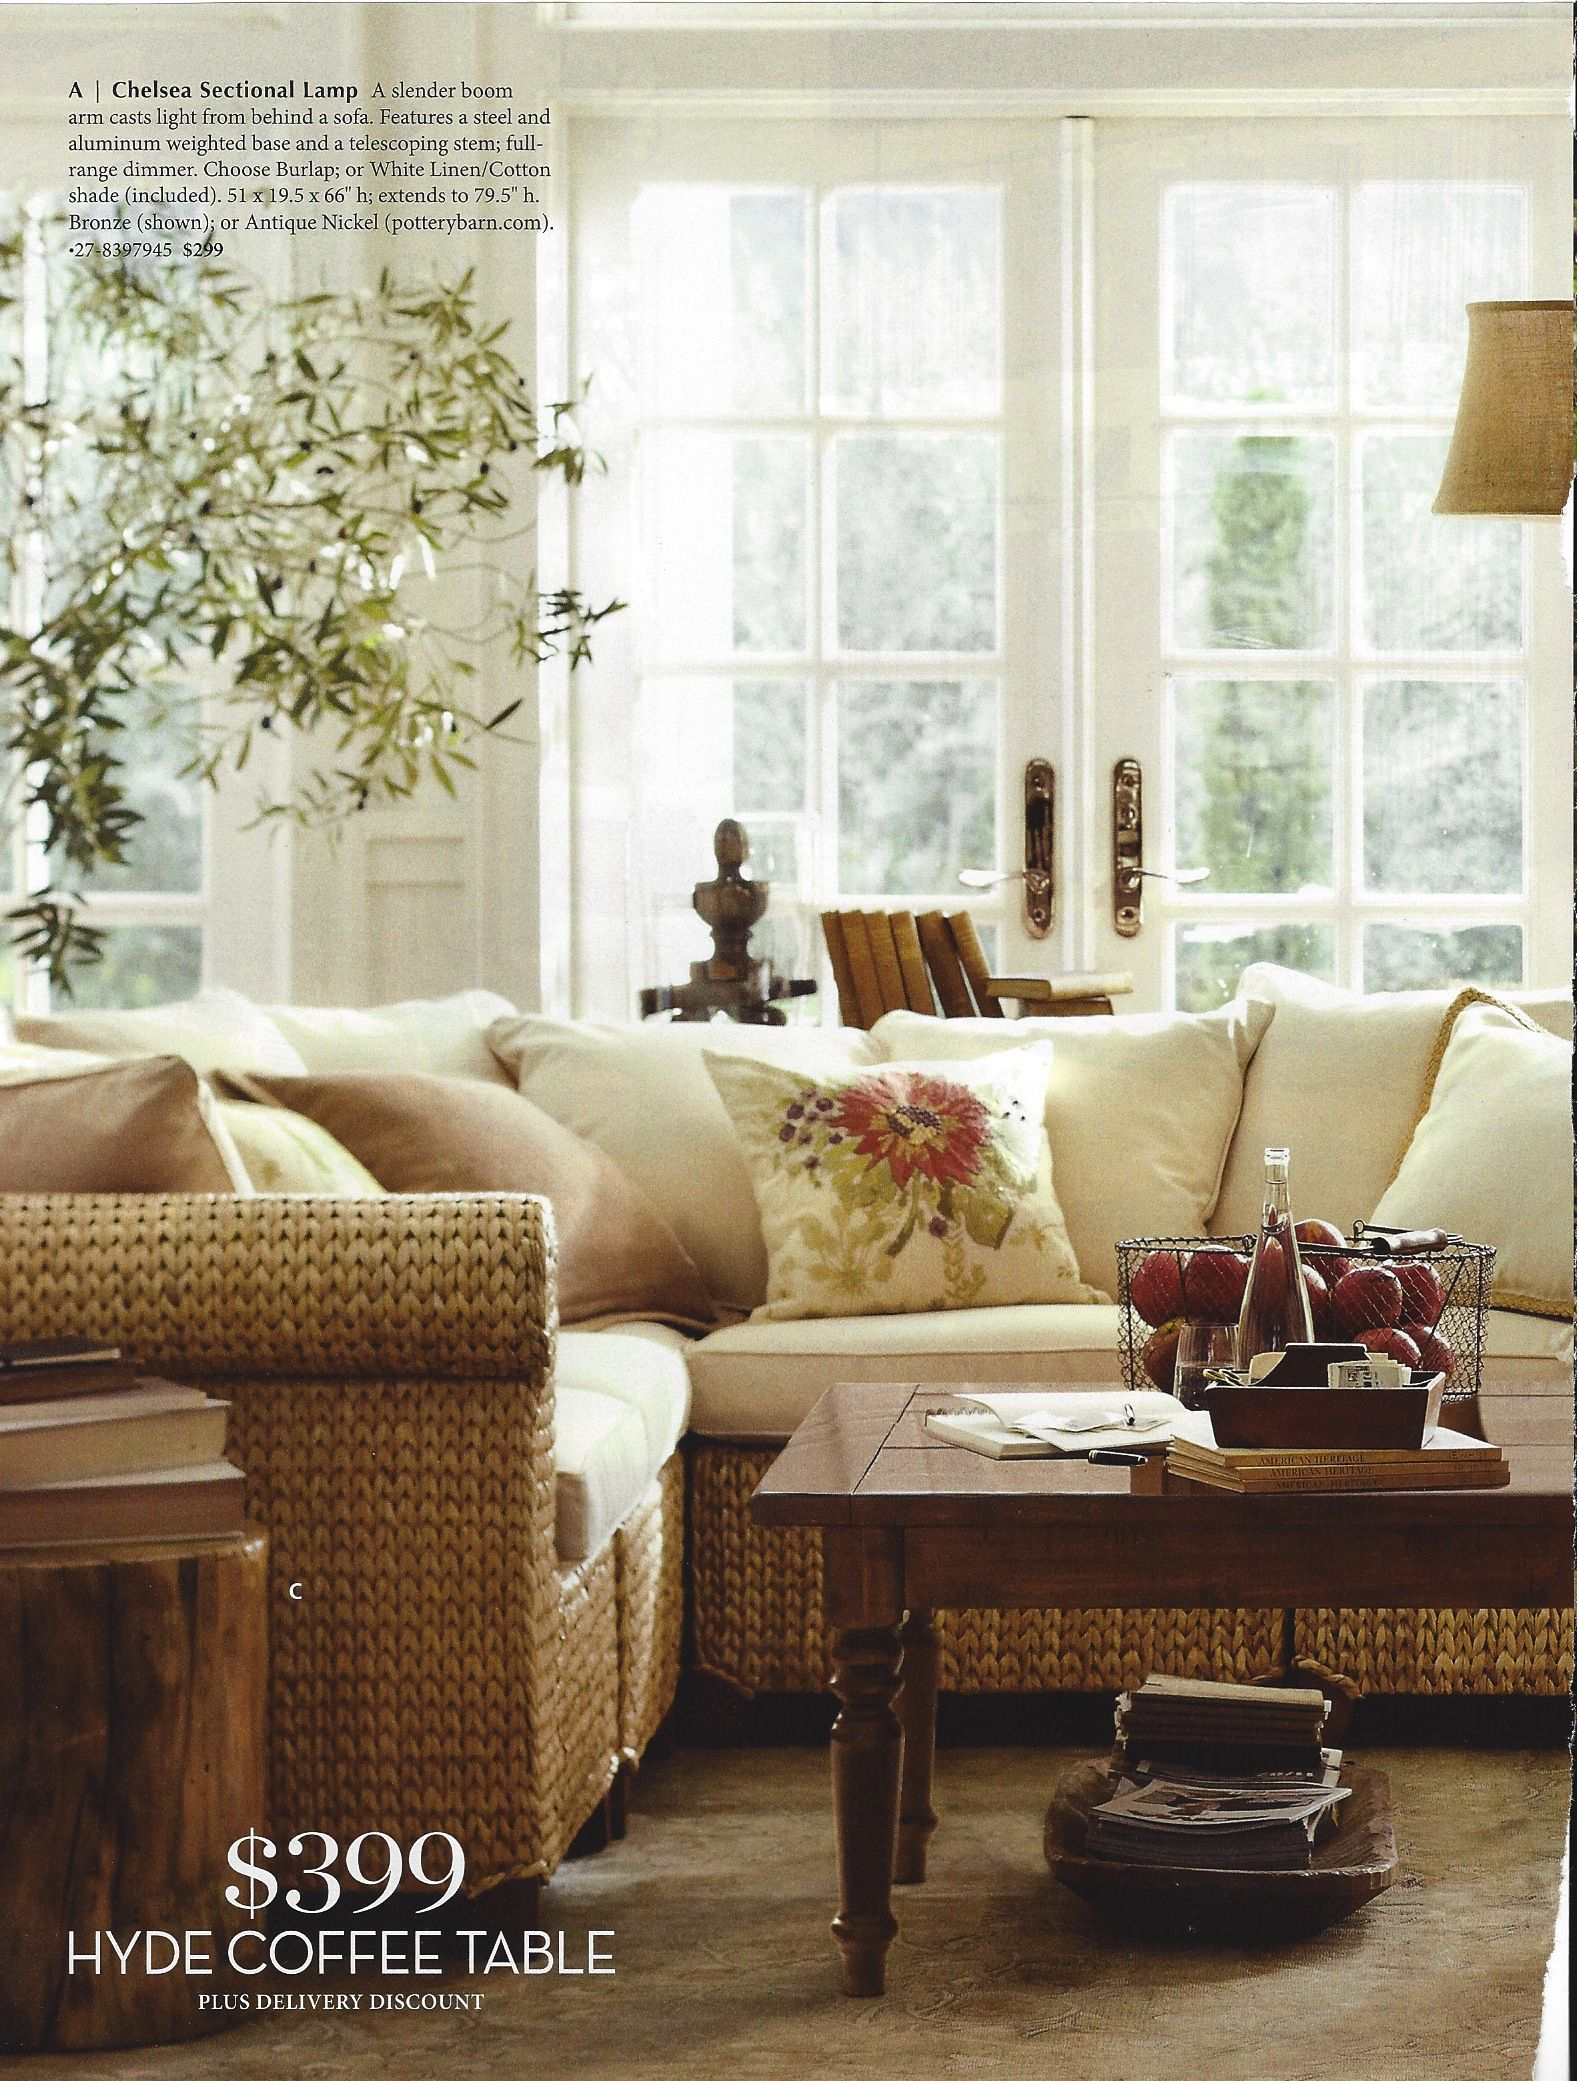 Traditional Victorian Colonial Living Room By Timothy Corrigan With Images: Pottery Barn Living Room, Home Living Room, Room Decor